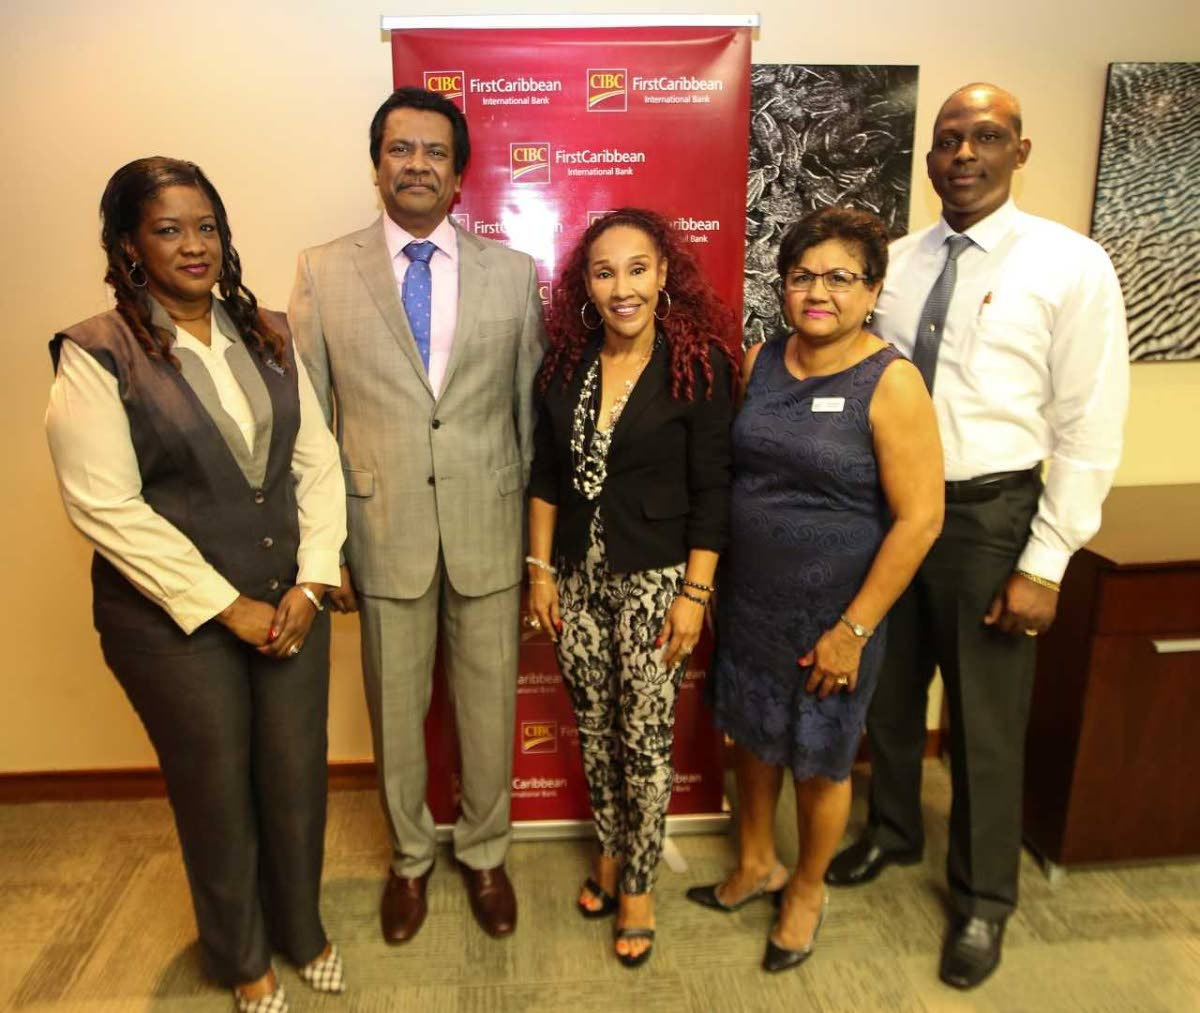 Managing director of CIBC FirstCaribbean Trinidad Operations, Anthony Seeraj, second left,  with   Sherma Mills-Serrette, left, clinic manager of the TTCancer Society  ; entertainer Marcia Miranda representing her charity Children with Cancer Support Group; Lilia Mootoo, general manager of Vitas House; and Kevin Cox, general manager of the Cancer Society.